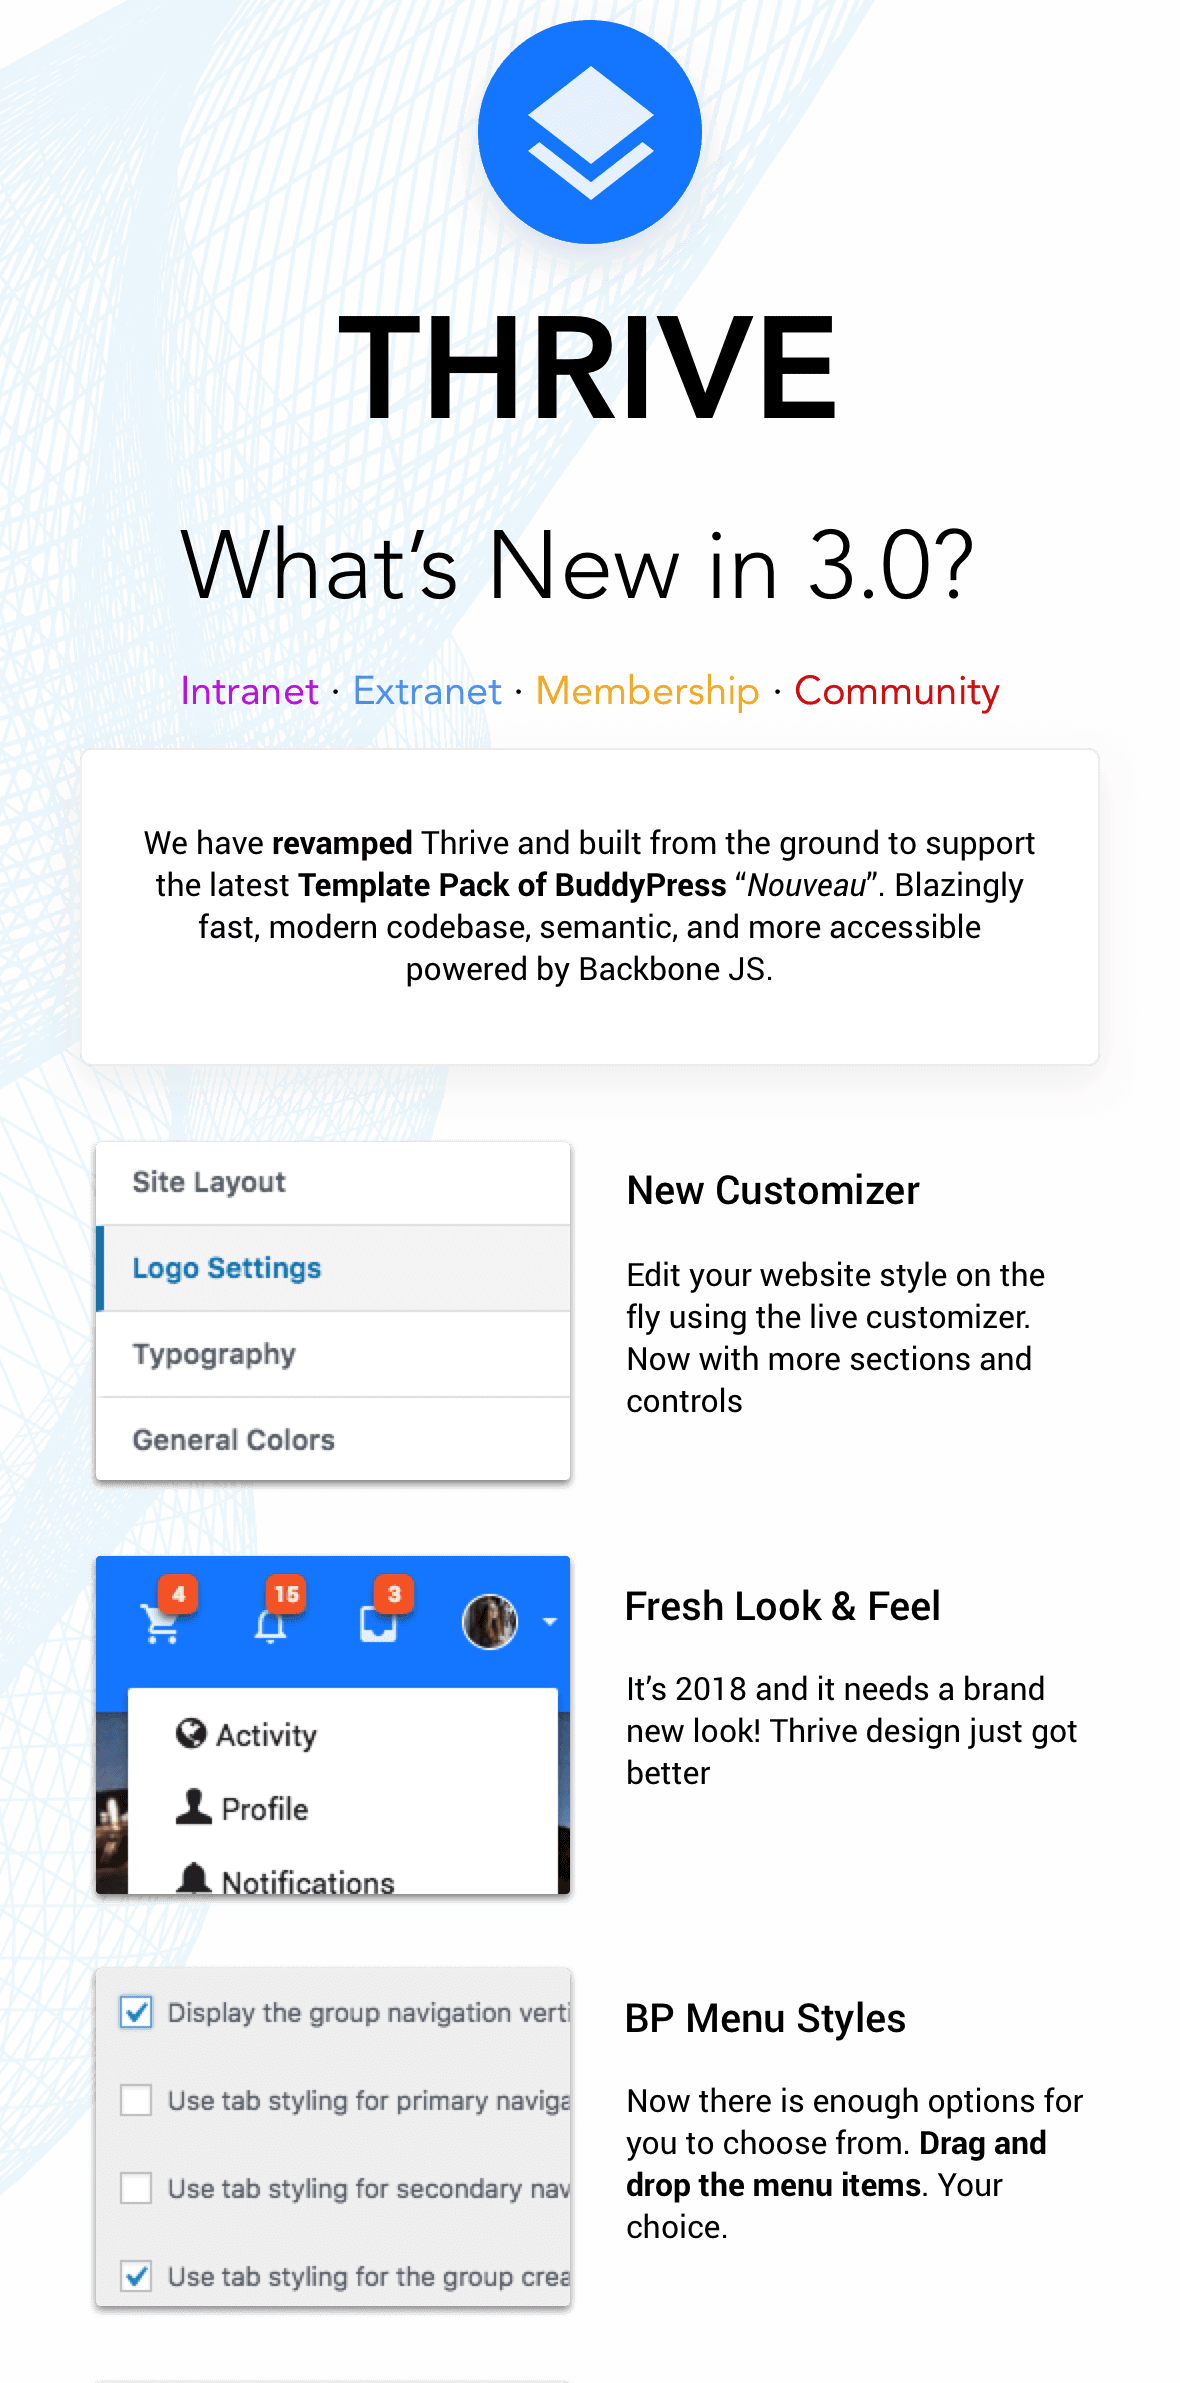 What's new in Thrive 3.0 part 1